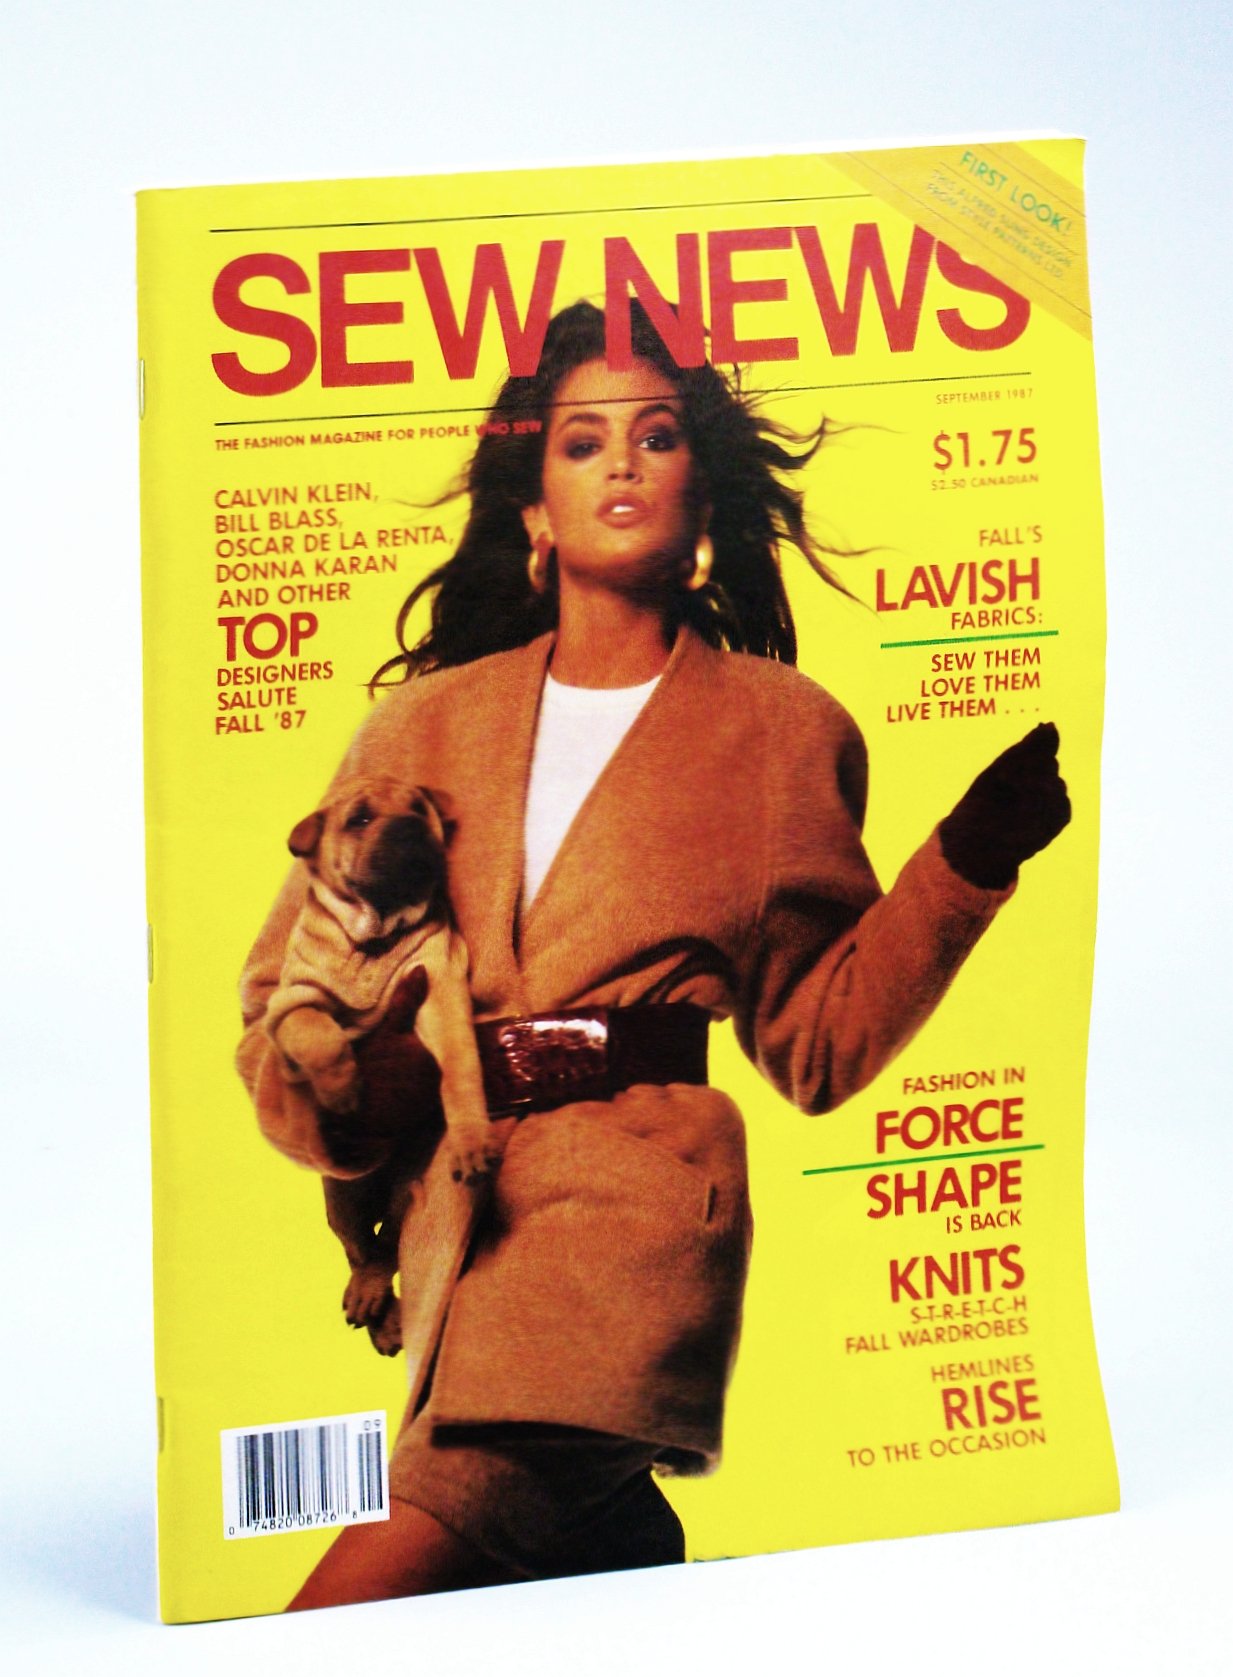 Image for Sew News - The Fashion Magazine For People Who Sew, Number 60, September [Sept.] 1987 - Cindy Crawford Cover Photo